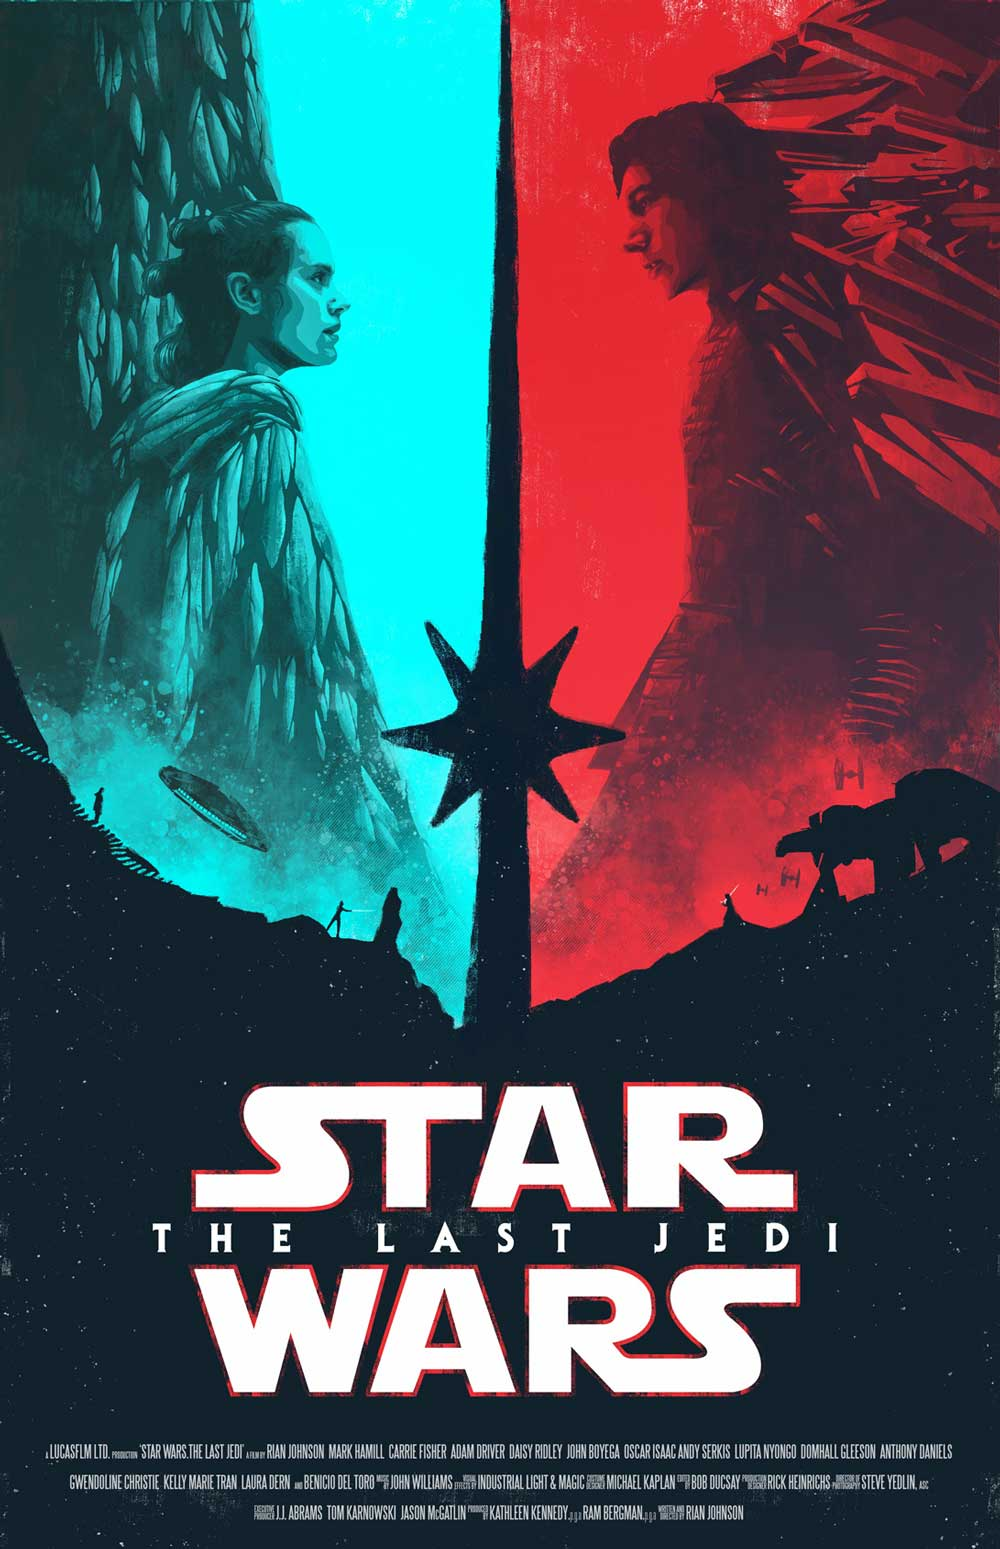 Star Wars The Last Jedi Movie Poster Lucasfilm